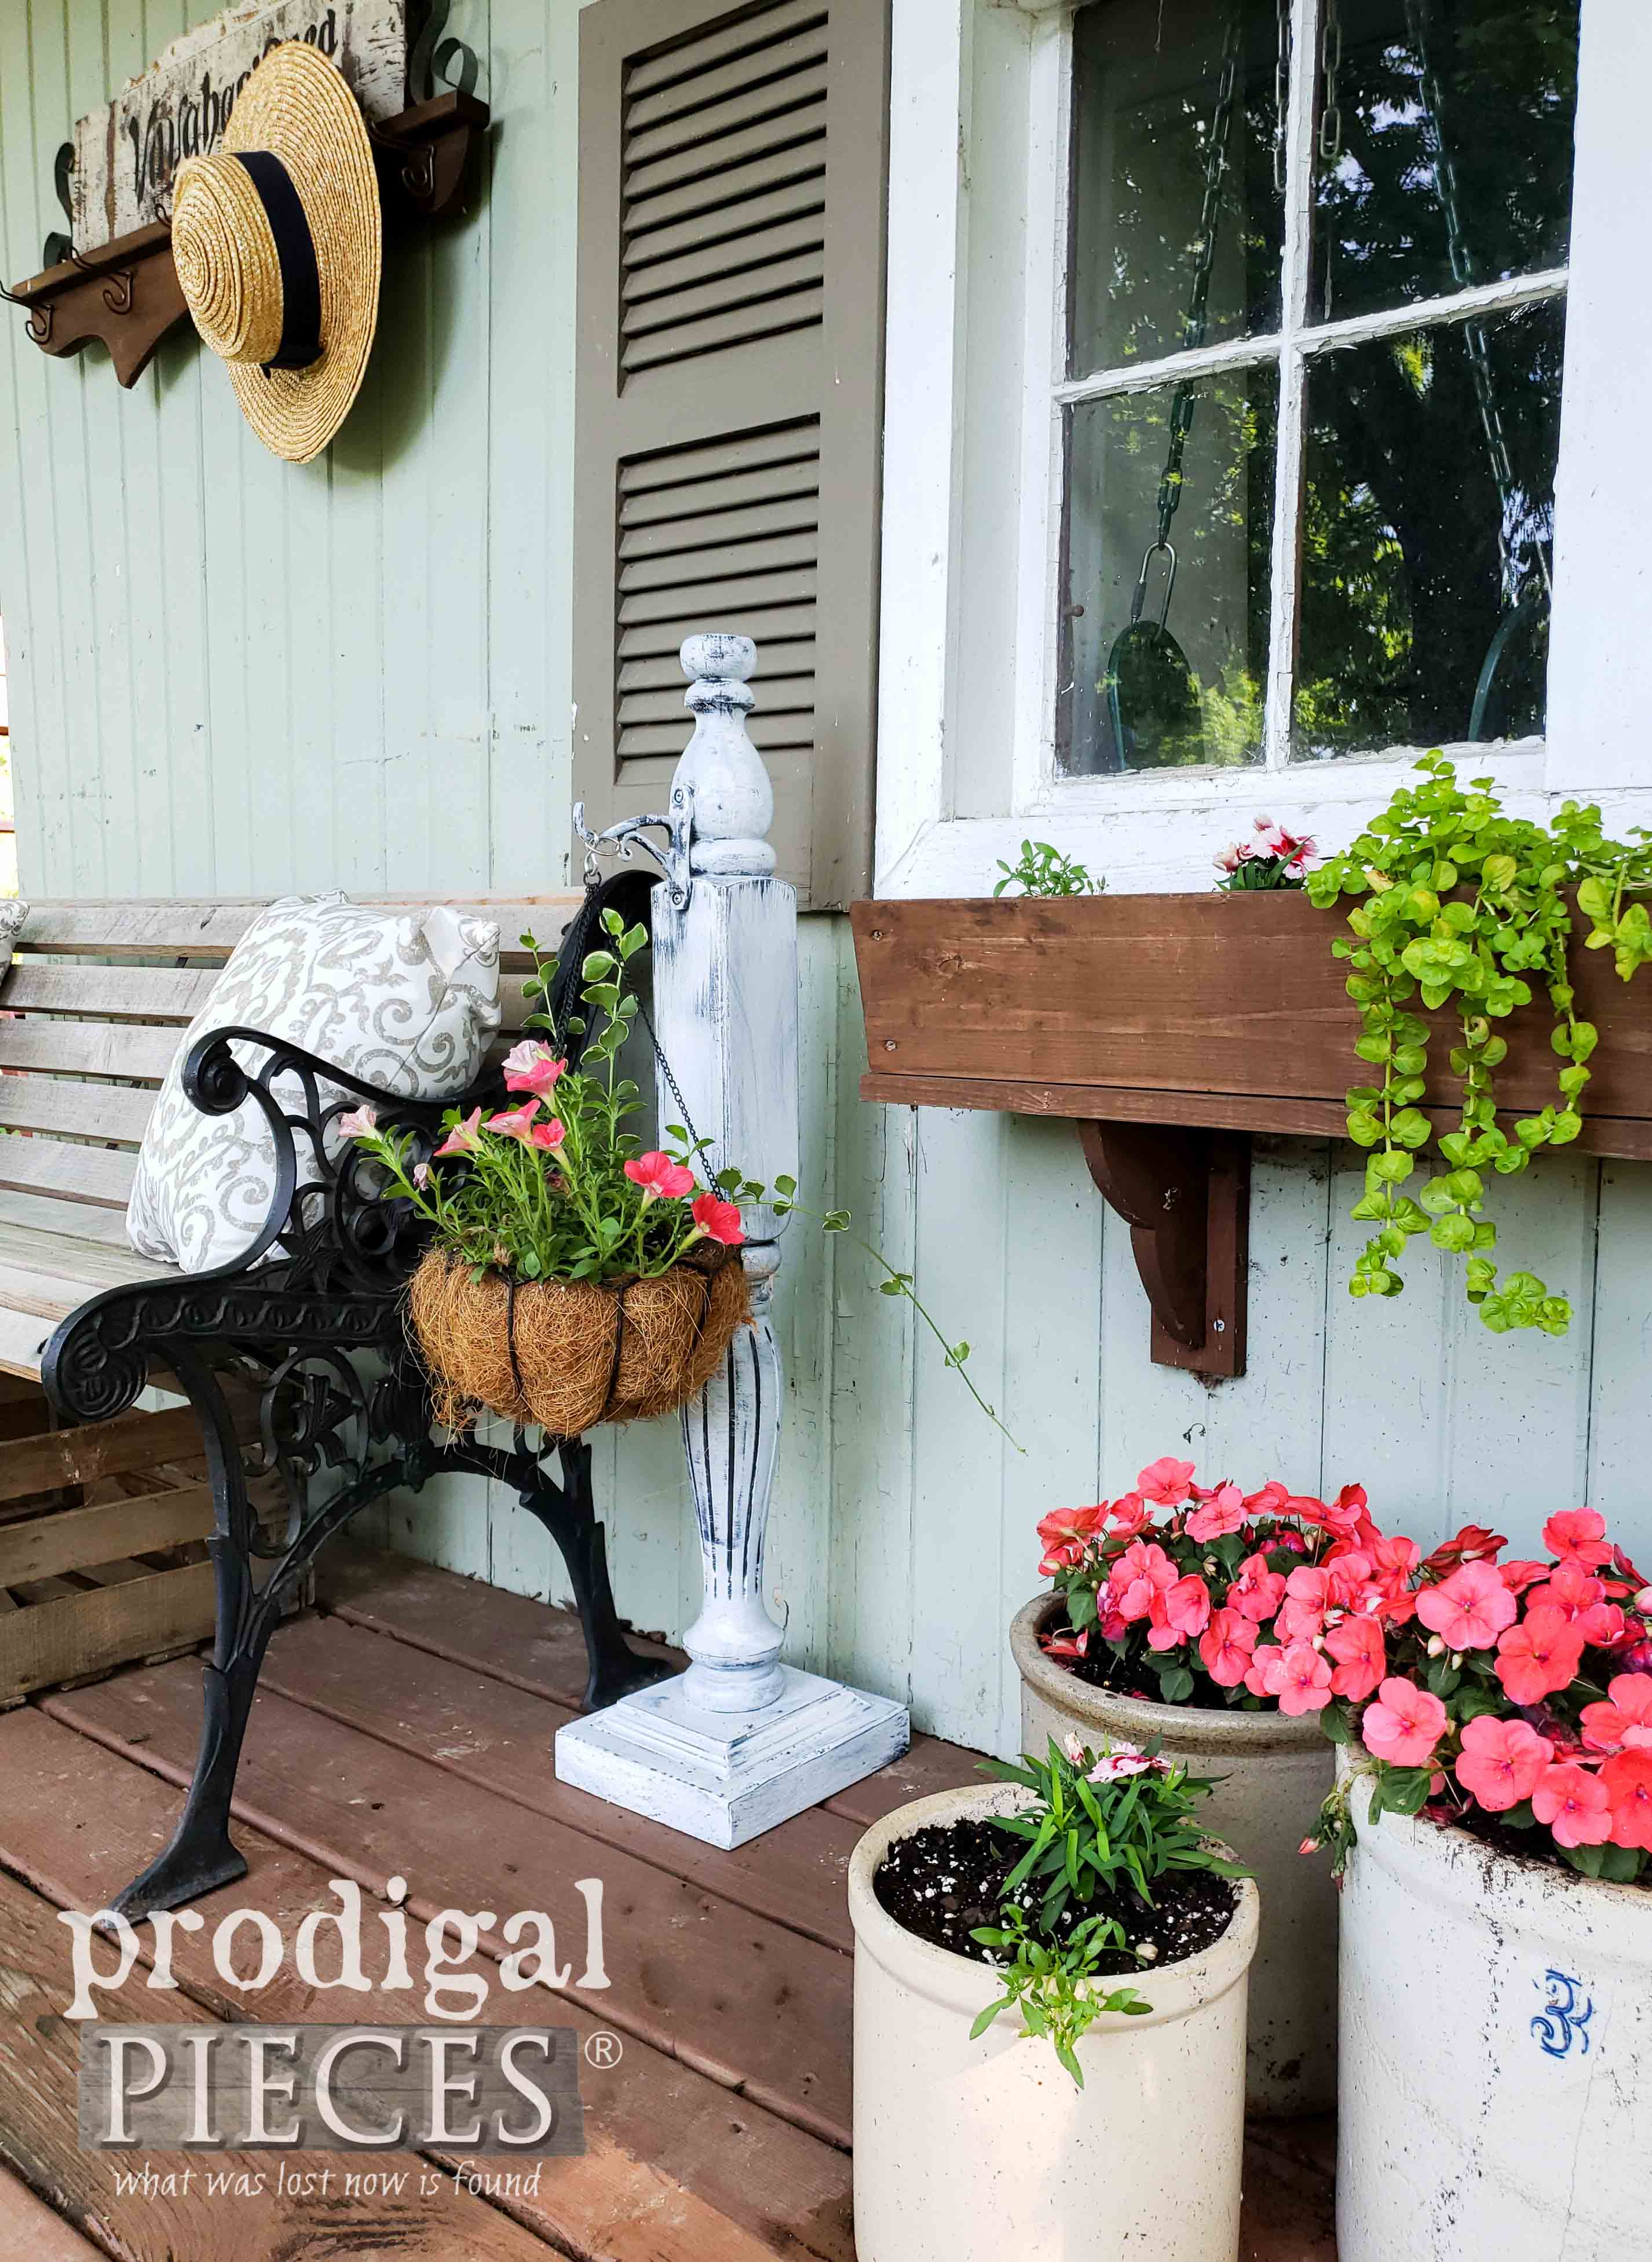 DIY Garden Shed Decor from Upcycled Materials by Larissa of Prodigal Pieces | prodigalpieces.com #prodigalpieces #diy #home #homedecor #garden #farmhouse